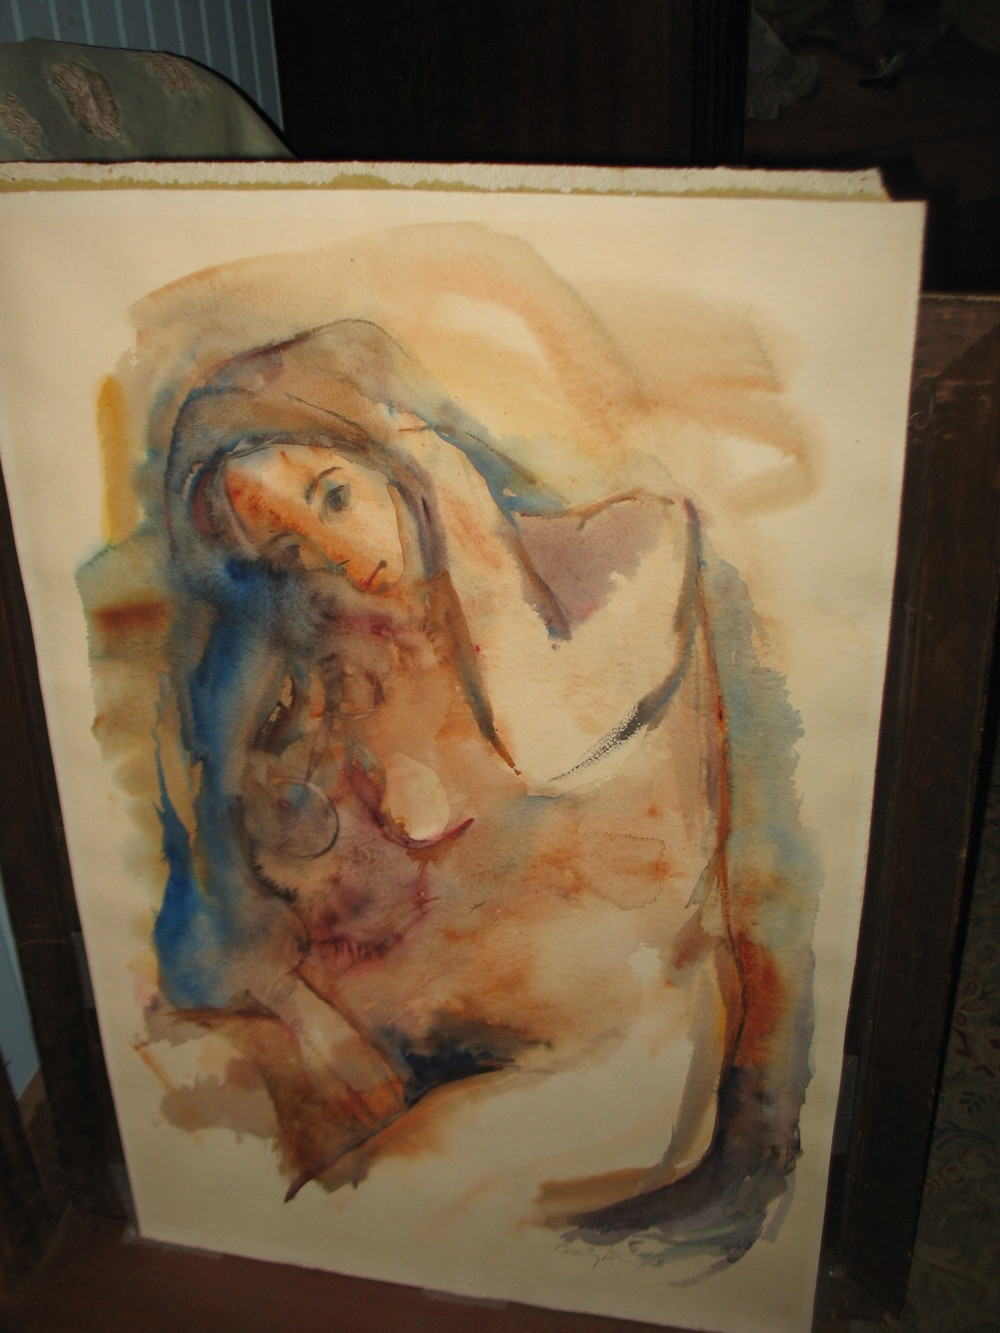 This watercolor is by the famous Jamaican artist Barrington Watson. It was purchased at an exhibit at Morehouse College in Atlanta in 1970. Signed on the lowerriightby the artist. Numbered 1/2. The title of the watercolor is 'Nude 1'. It measures 35 inches X24 inches. Price upon request